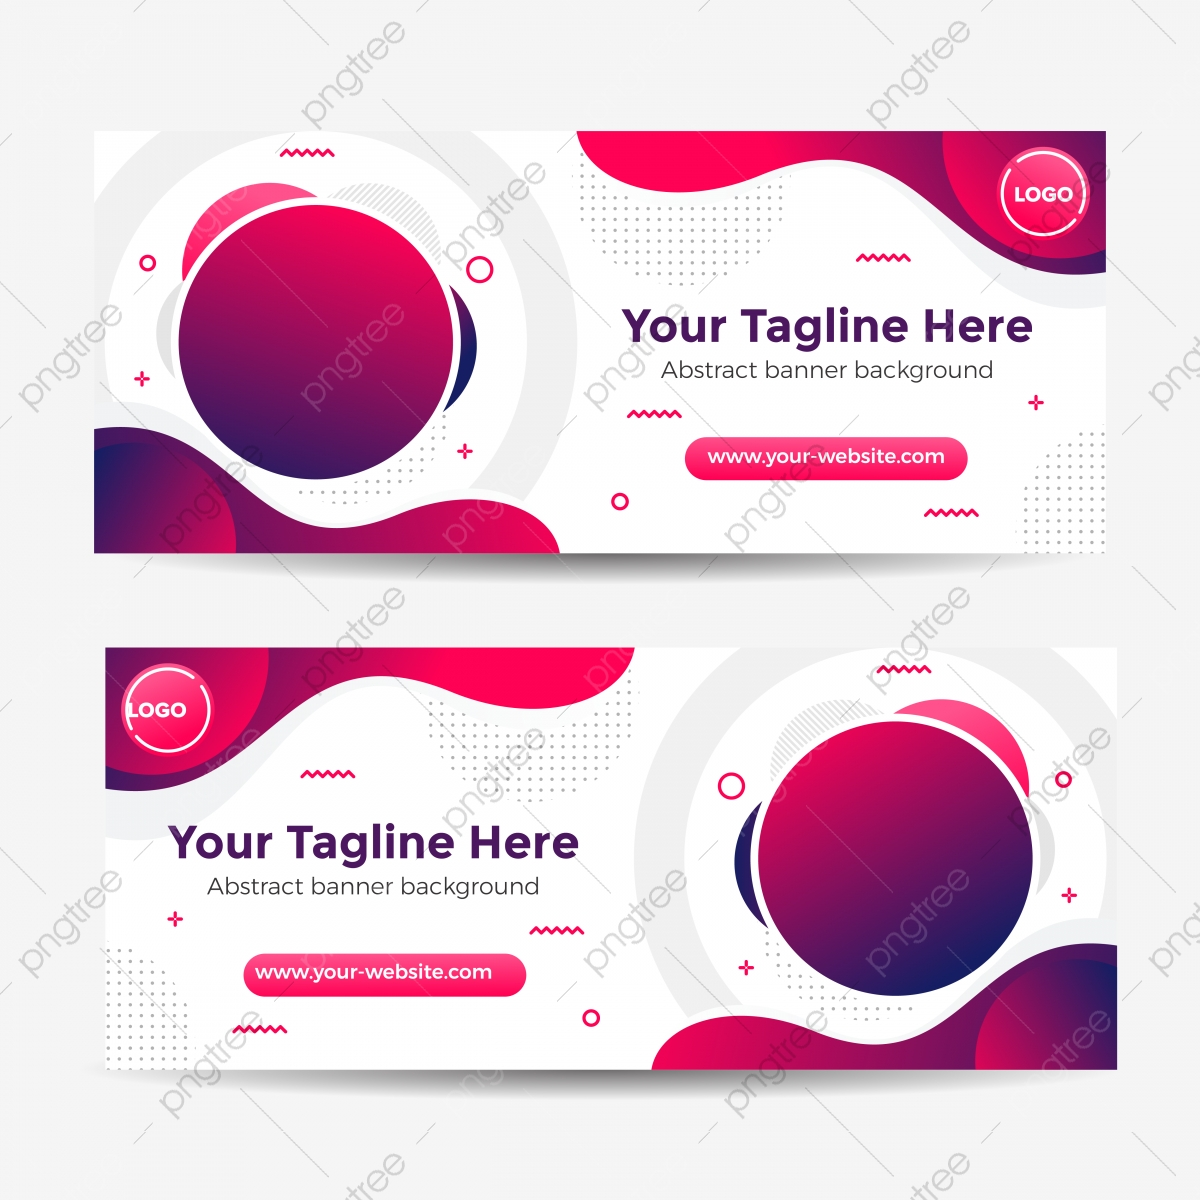 banner background png vector psd and clipart with transparent background for free download pngtree https pngtree com freepng abstract business banner background 3706731 html